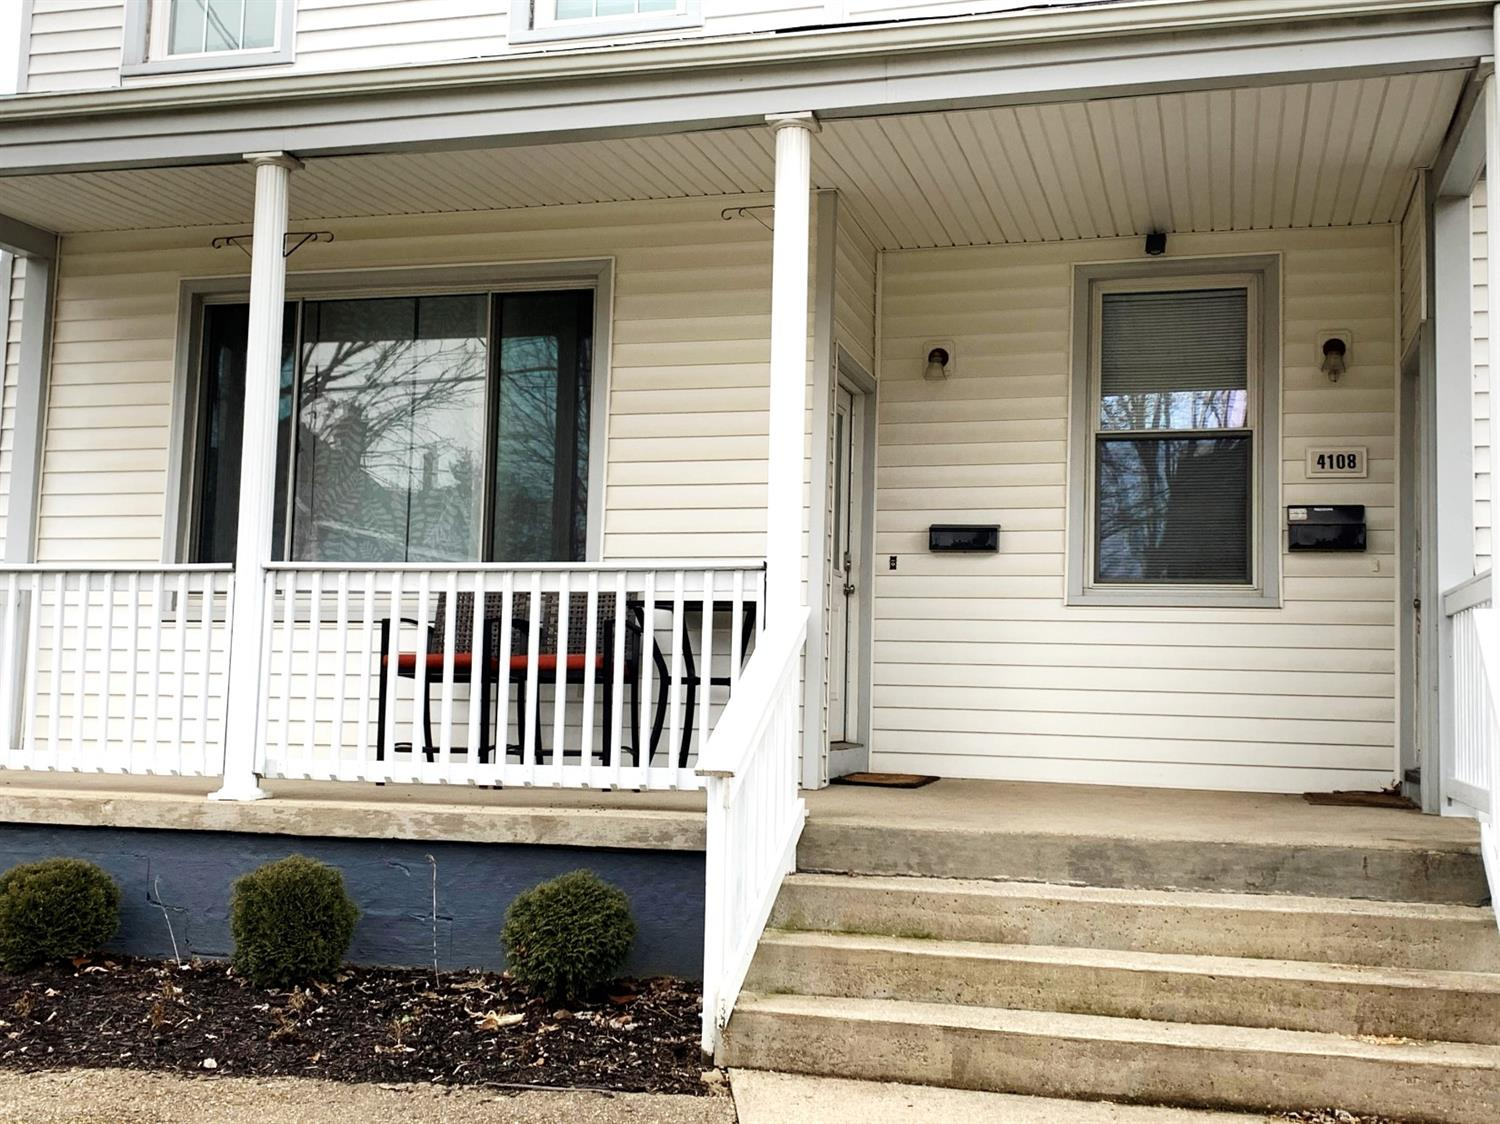 Photo 2 for 4108 Forest Avenue Norwood, OH 45212